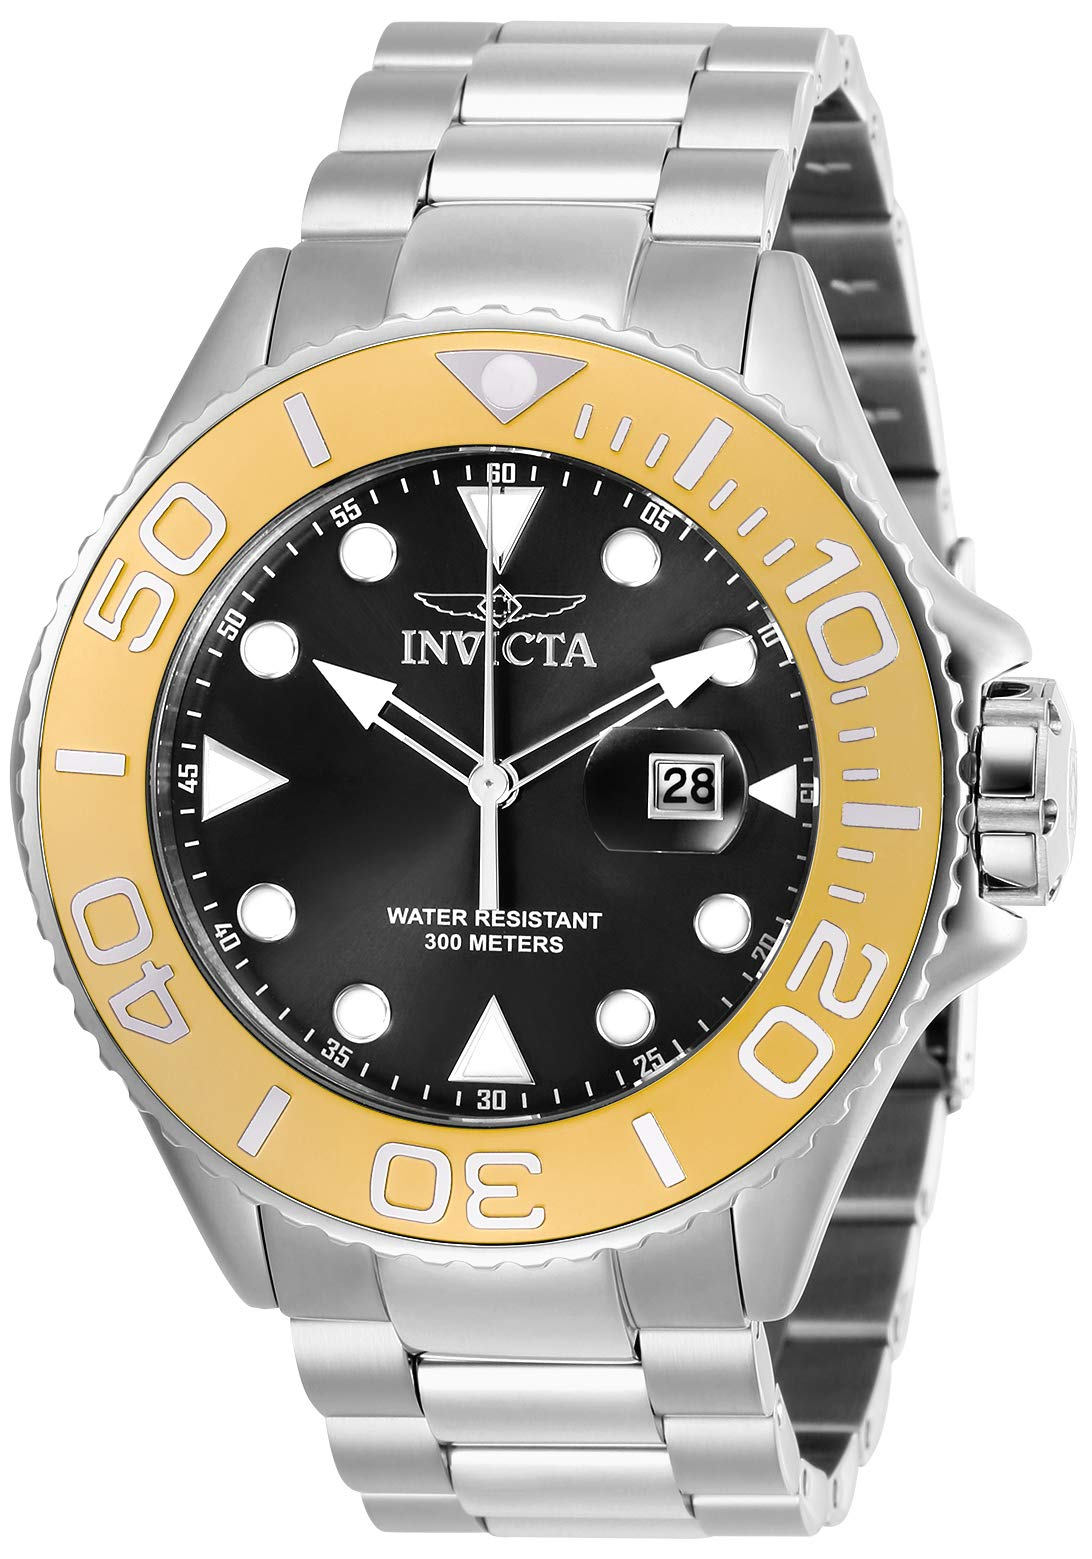 Invicta Men's Pro Diver Quartz Diving Watch with Stainless-Steel Strap, Silver, 24 (Model: 28767)